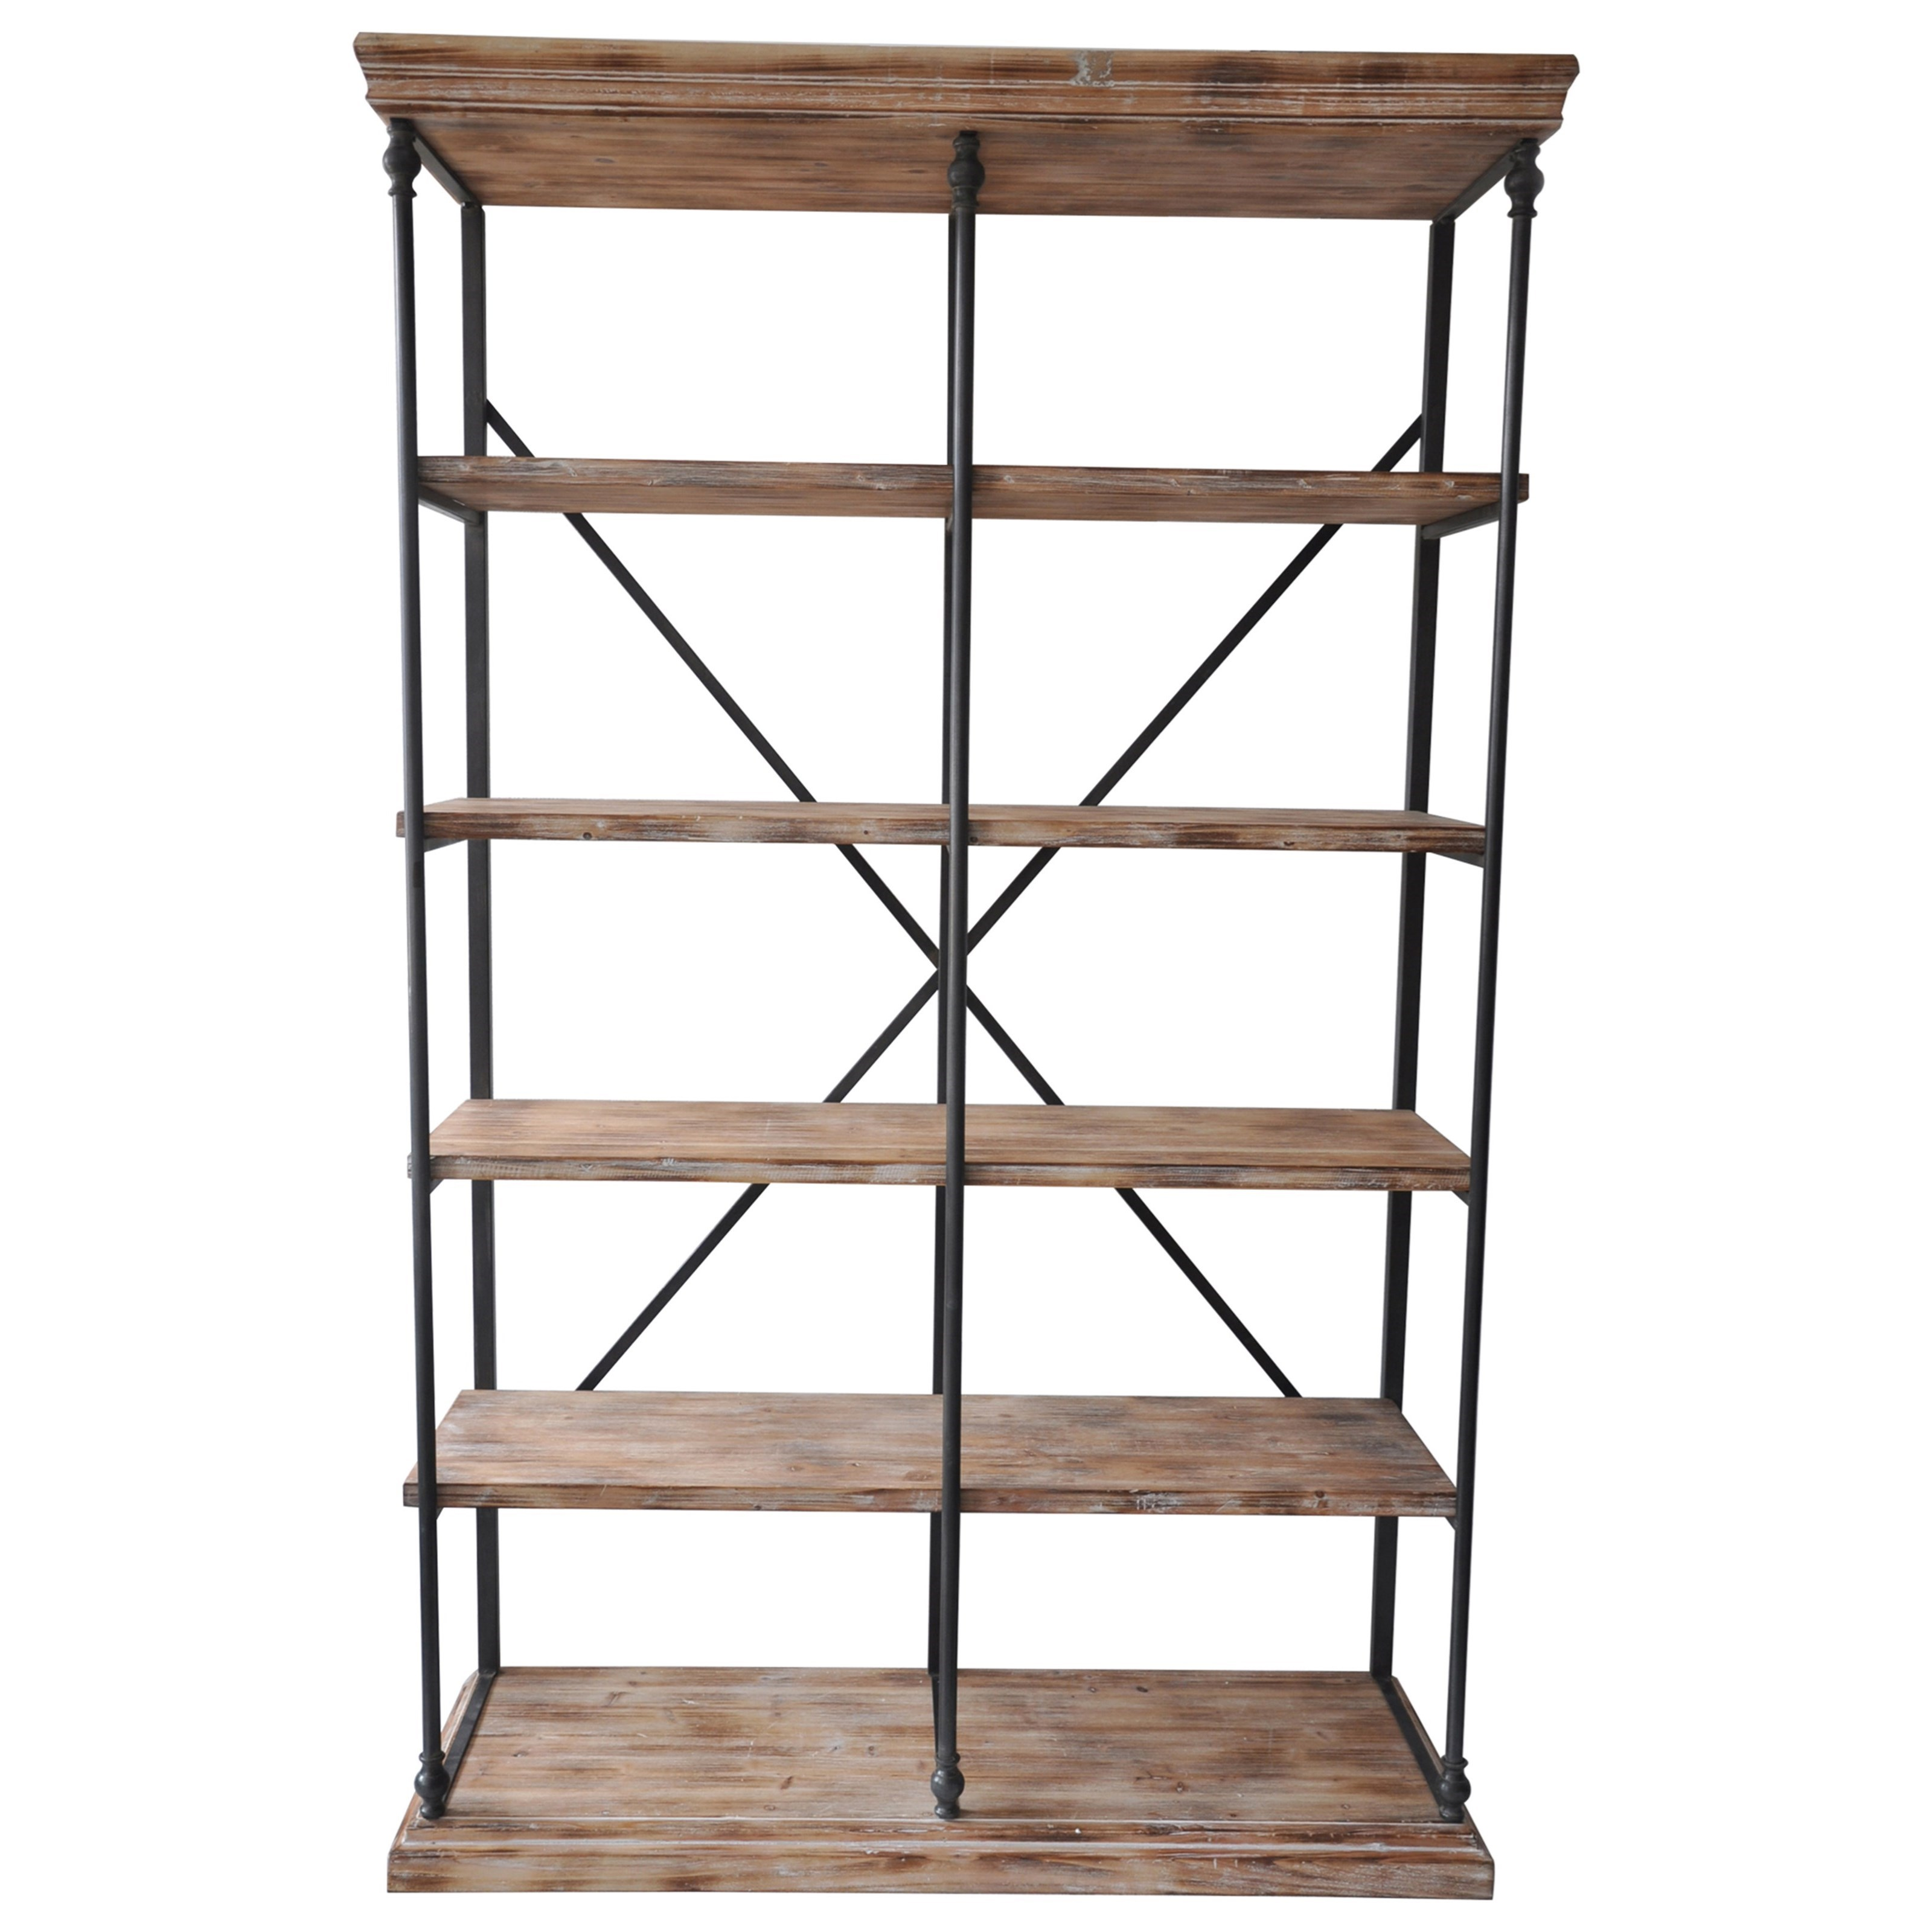 Accent Furniture La Salle Metal and Wood Bookshelf by Crestview Collection at Rife's Home Furniture